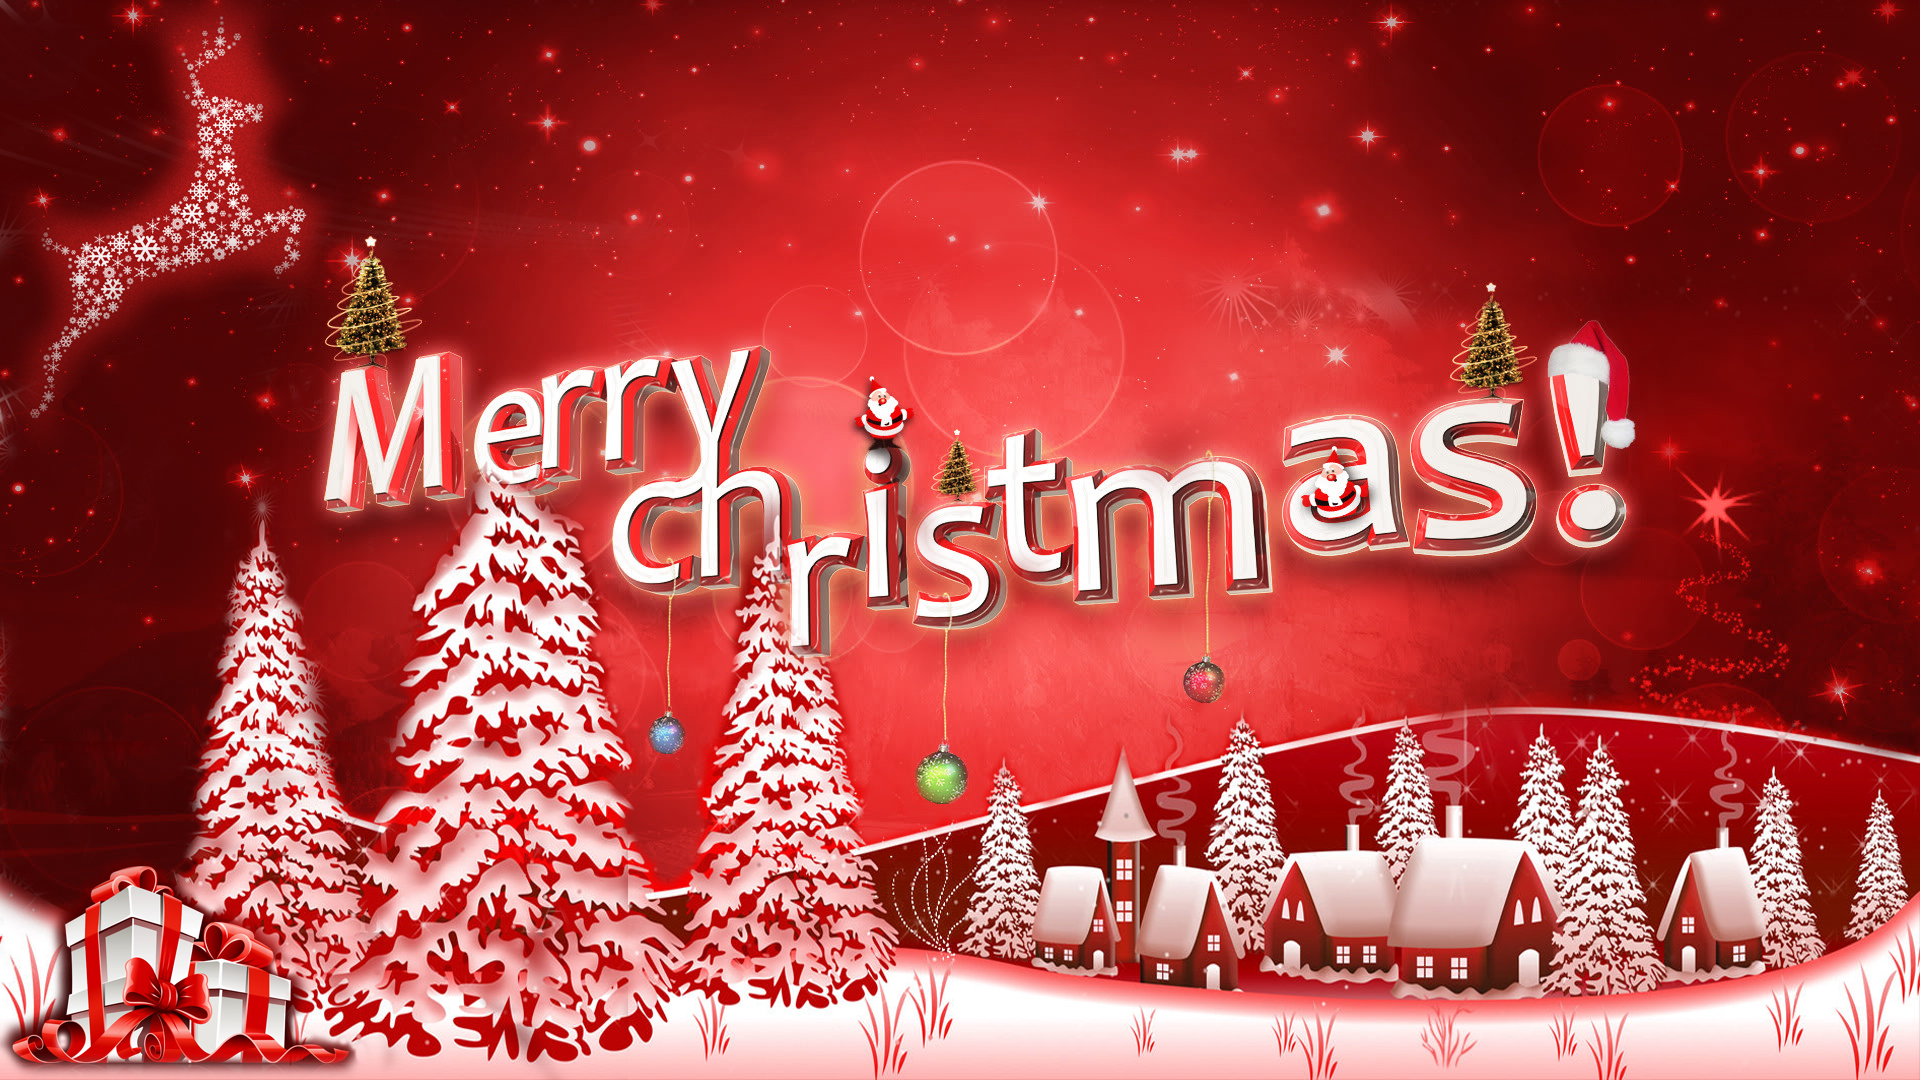 Merry Christmas Hd Wallpapers Image Amp Greetings Free